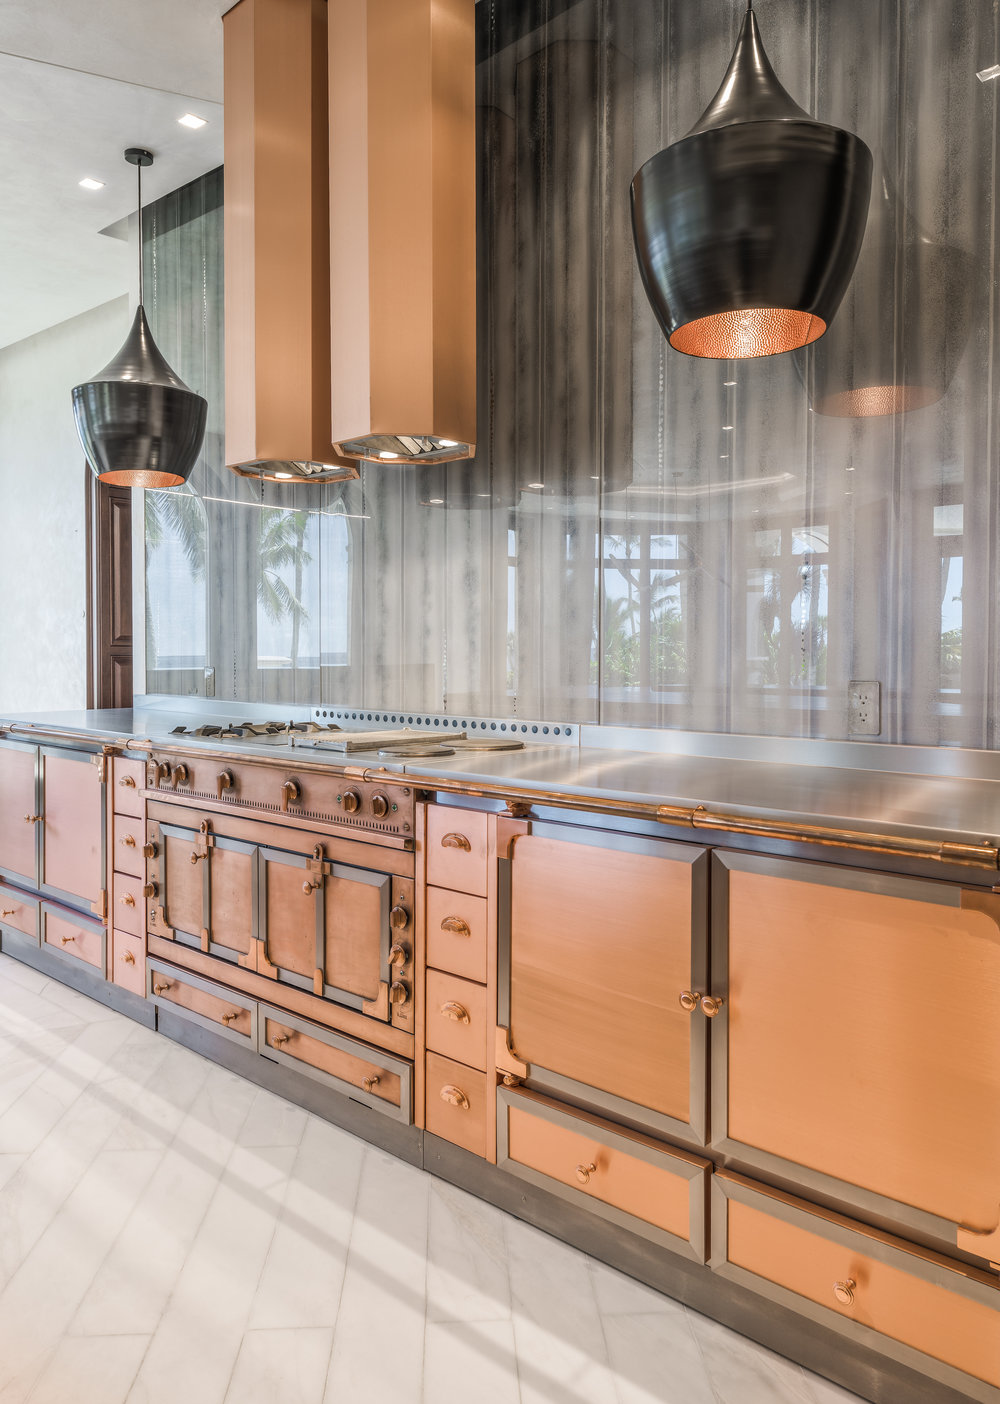 Private Beachfront Estate Kitchen Feature Wall Inspired by an iconic La Cornue range, designer Chad Jensen commissioned Copper and Stainless-Steel cabinetry handcrafted by French artisans. Balanced by a custom designed Copper hood, Tom Dixon pendants, and artist painted eglomise glass panels.